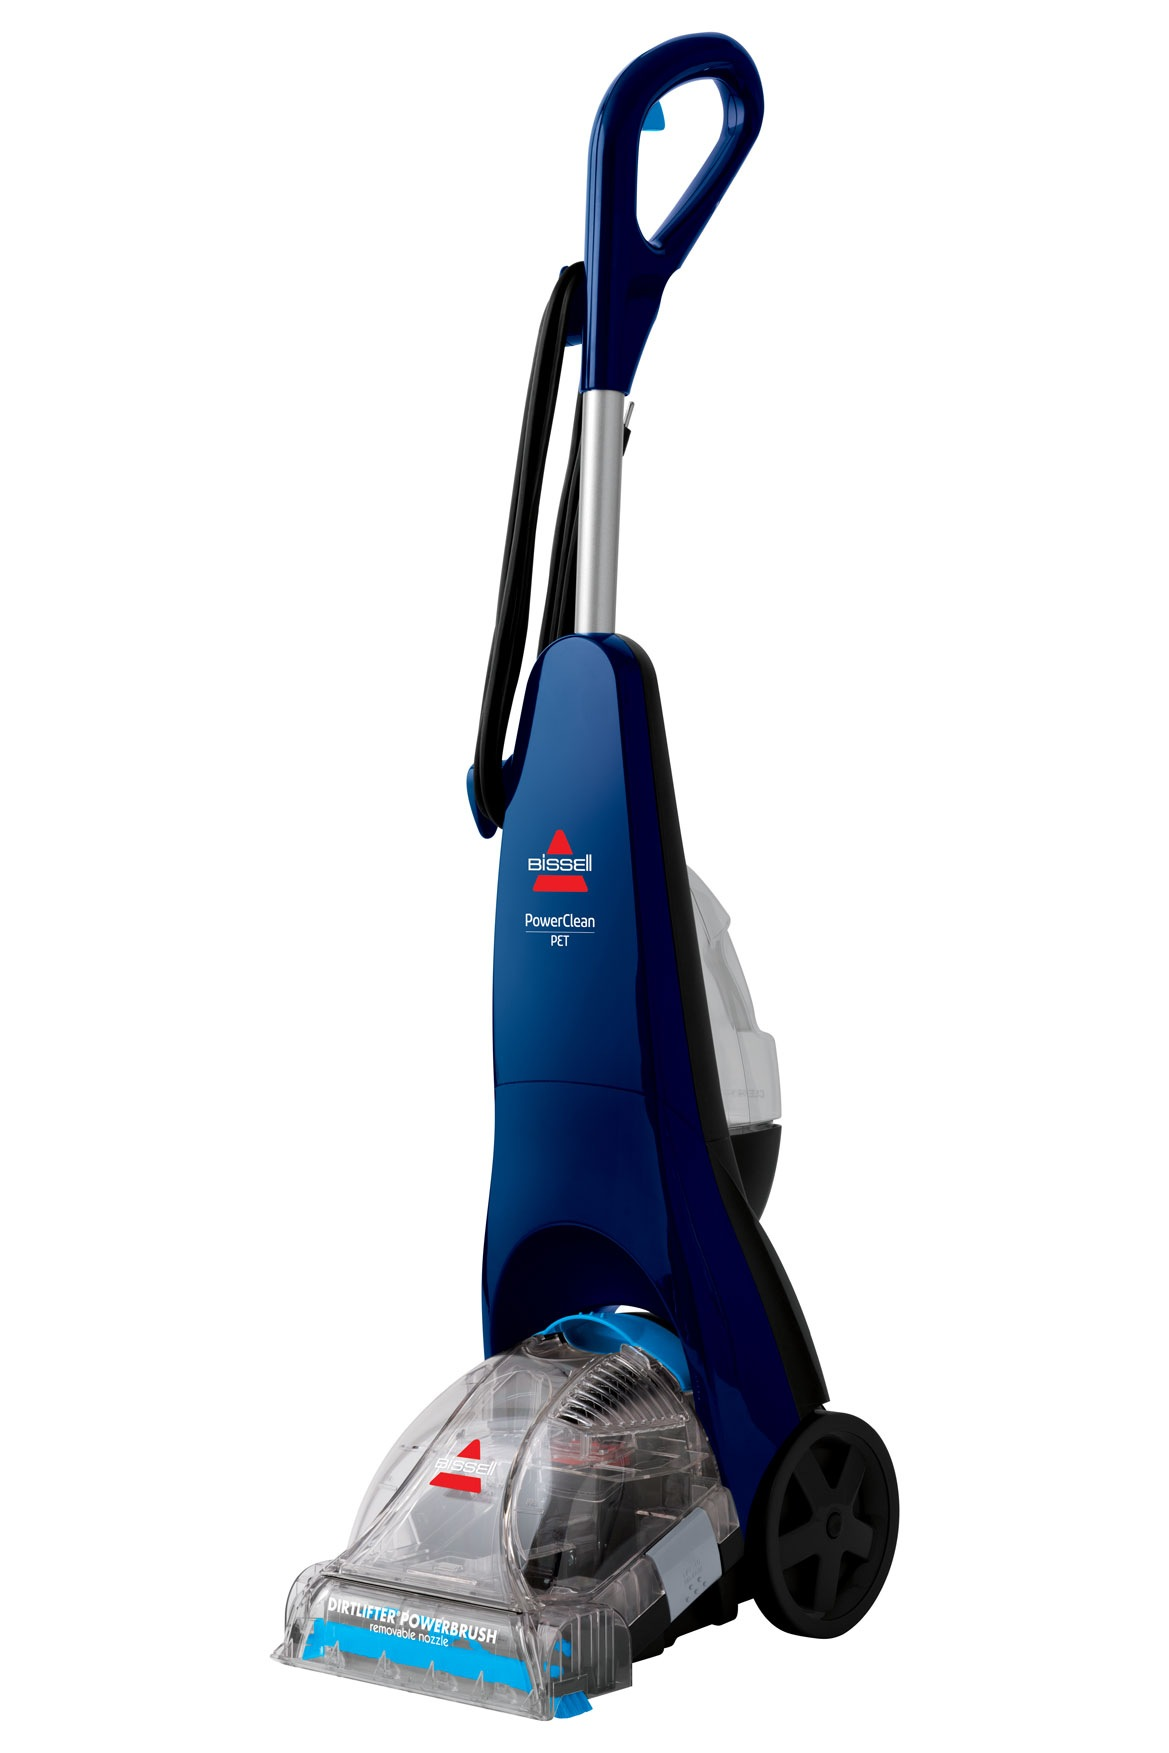 bissell 1285k petwash powerbrush deep cleaner blue myer online rh myer com au Bissell Manual Sweeper Little Green Bissell Owner's Manual